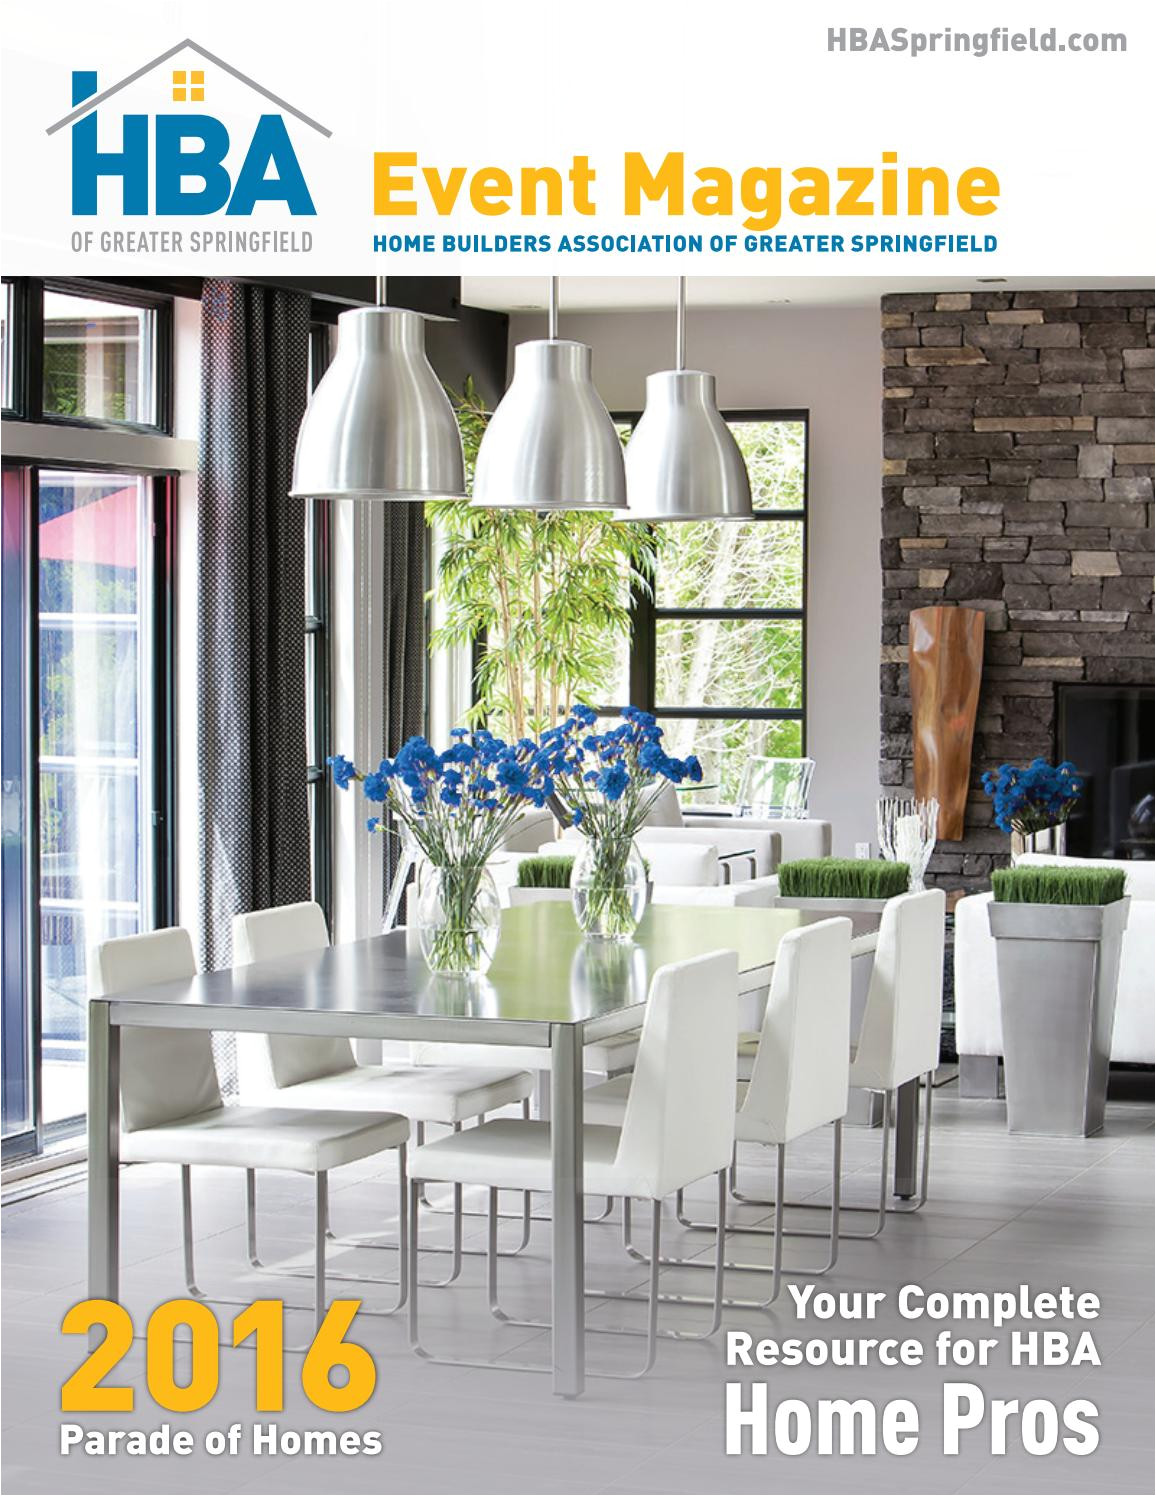 hba event magazine 2016 parade edition by home builders association of greater springfield issuu